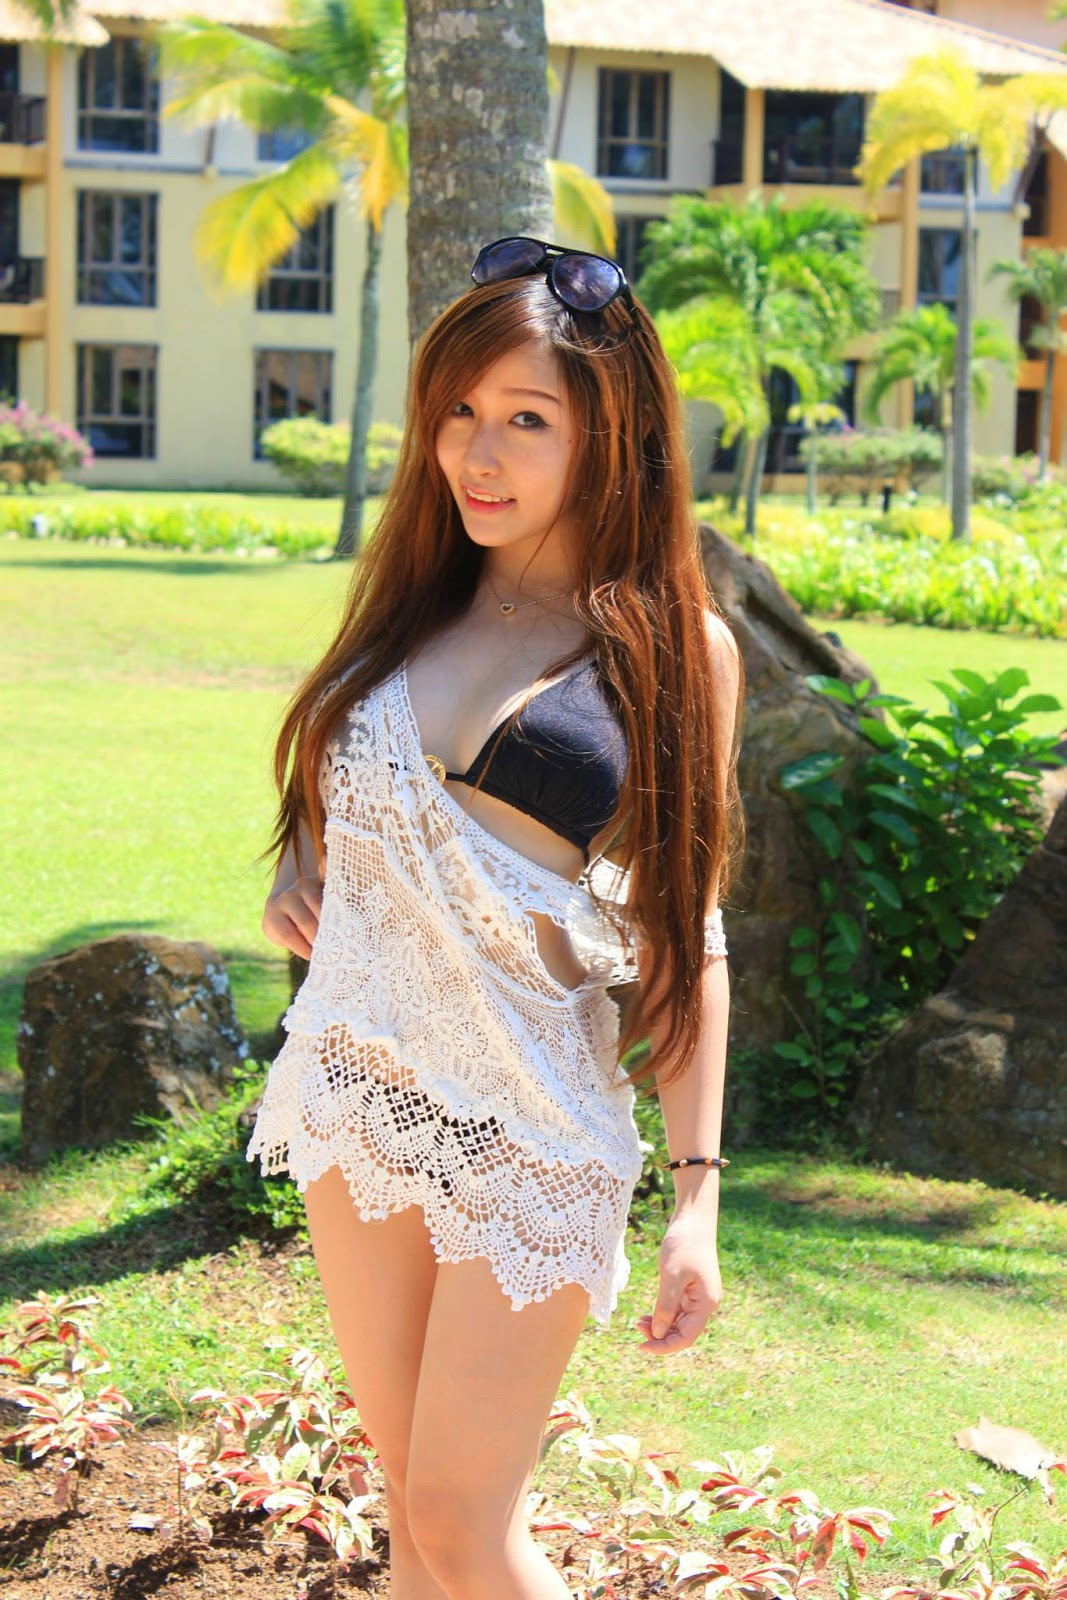 Full face of Vania ayu Indo Girls Pic 3 of 35